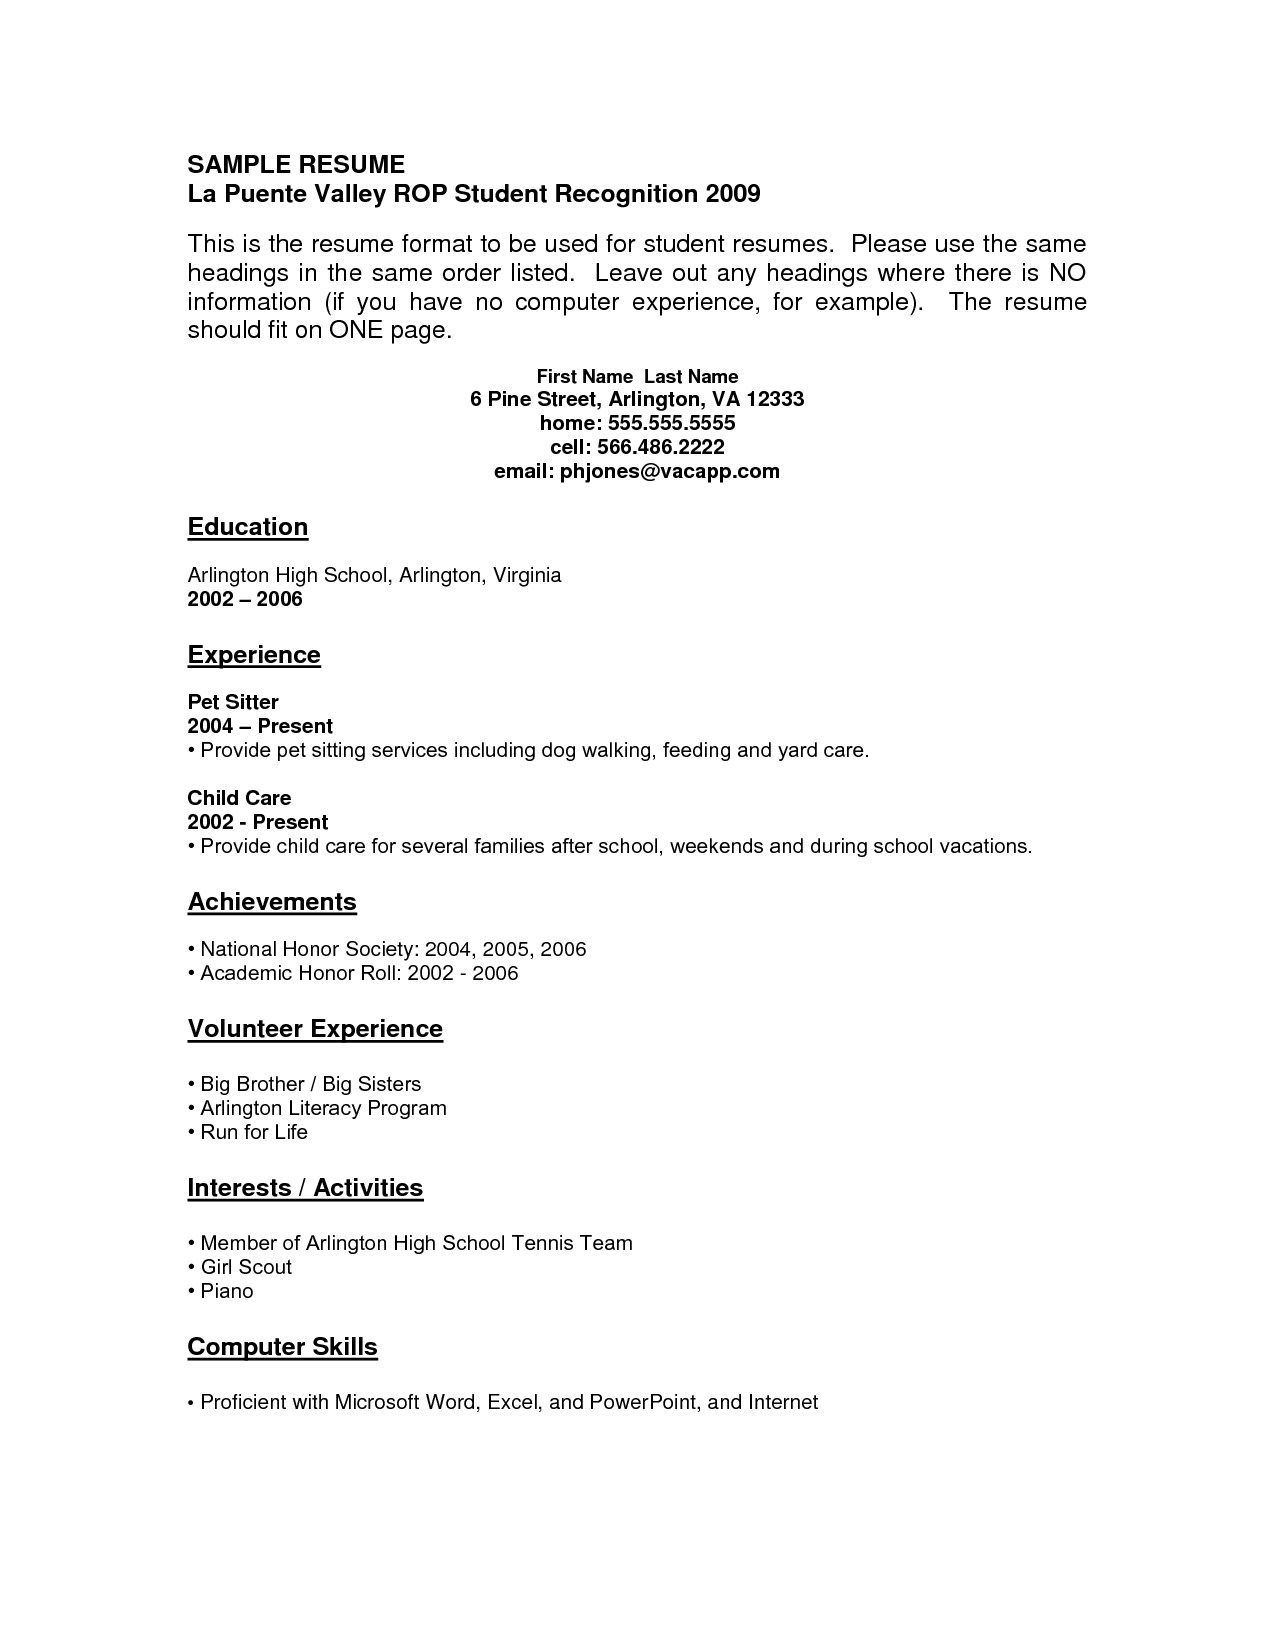 Resume Writing For Students With No Work Experience